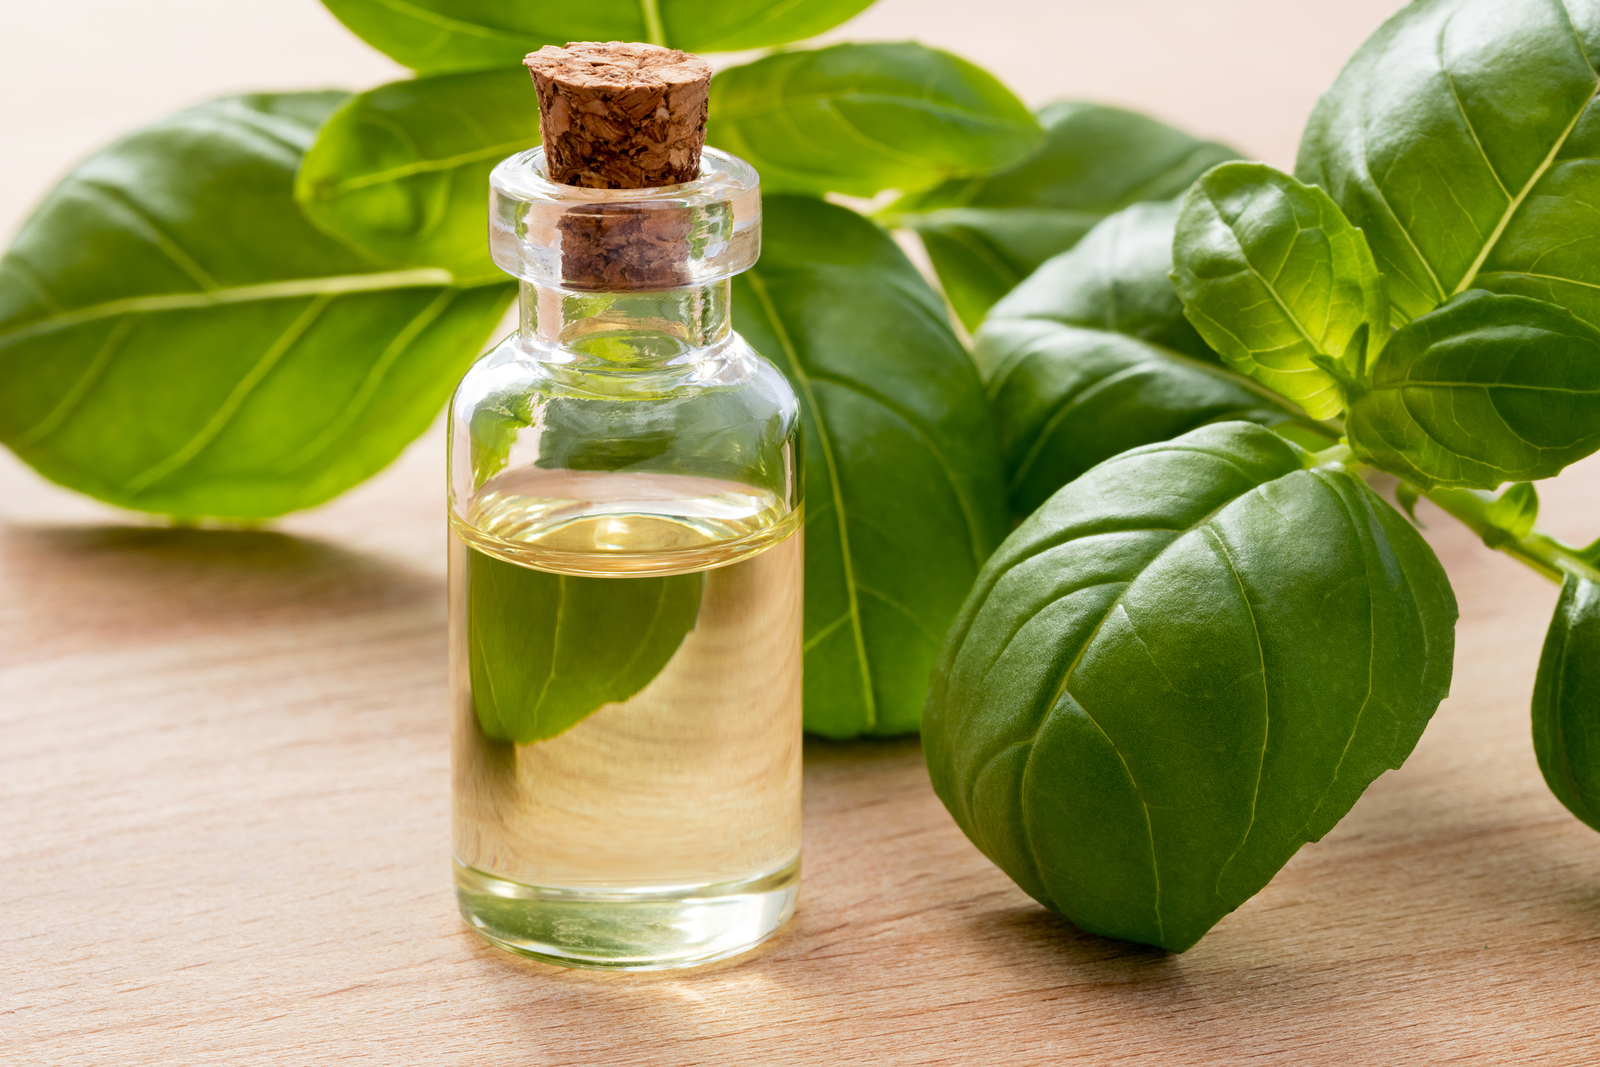 bigstock-A-Bottle-Of-Basil-Essential-Oi-228146494.jpg